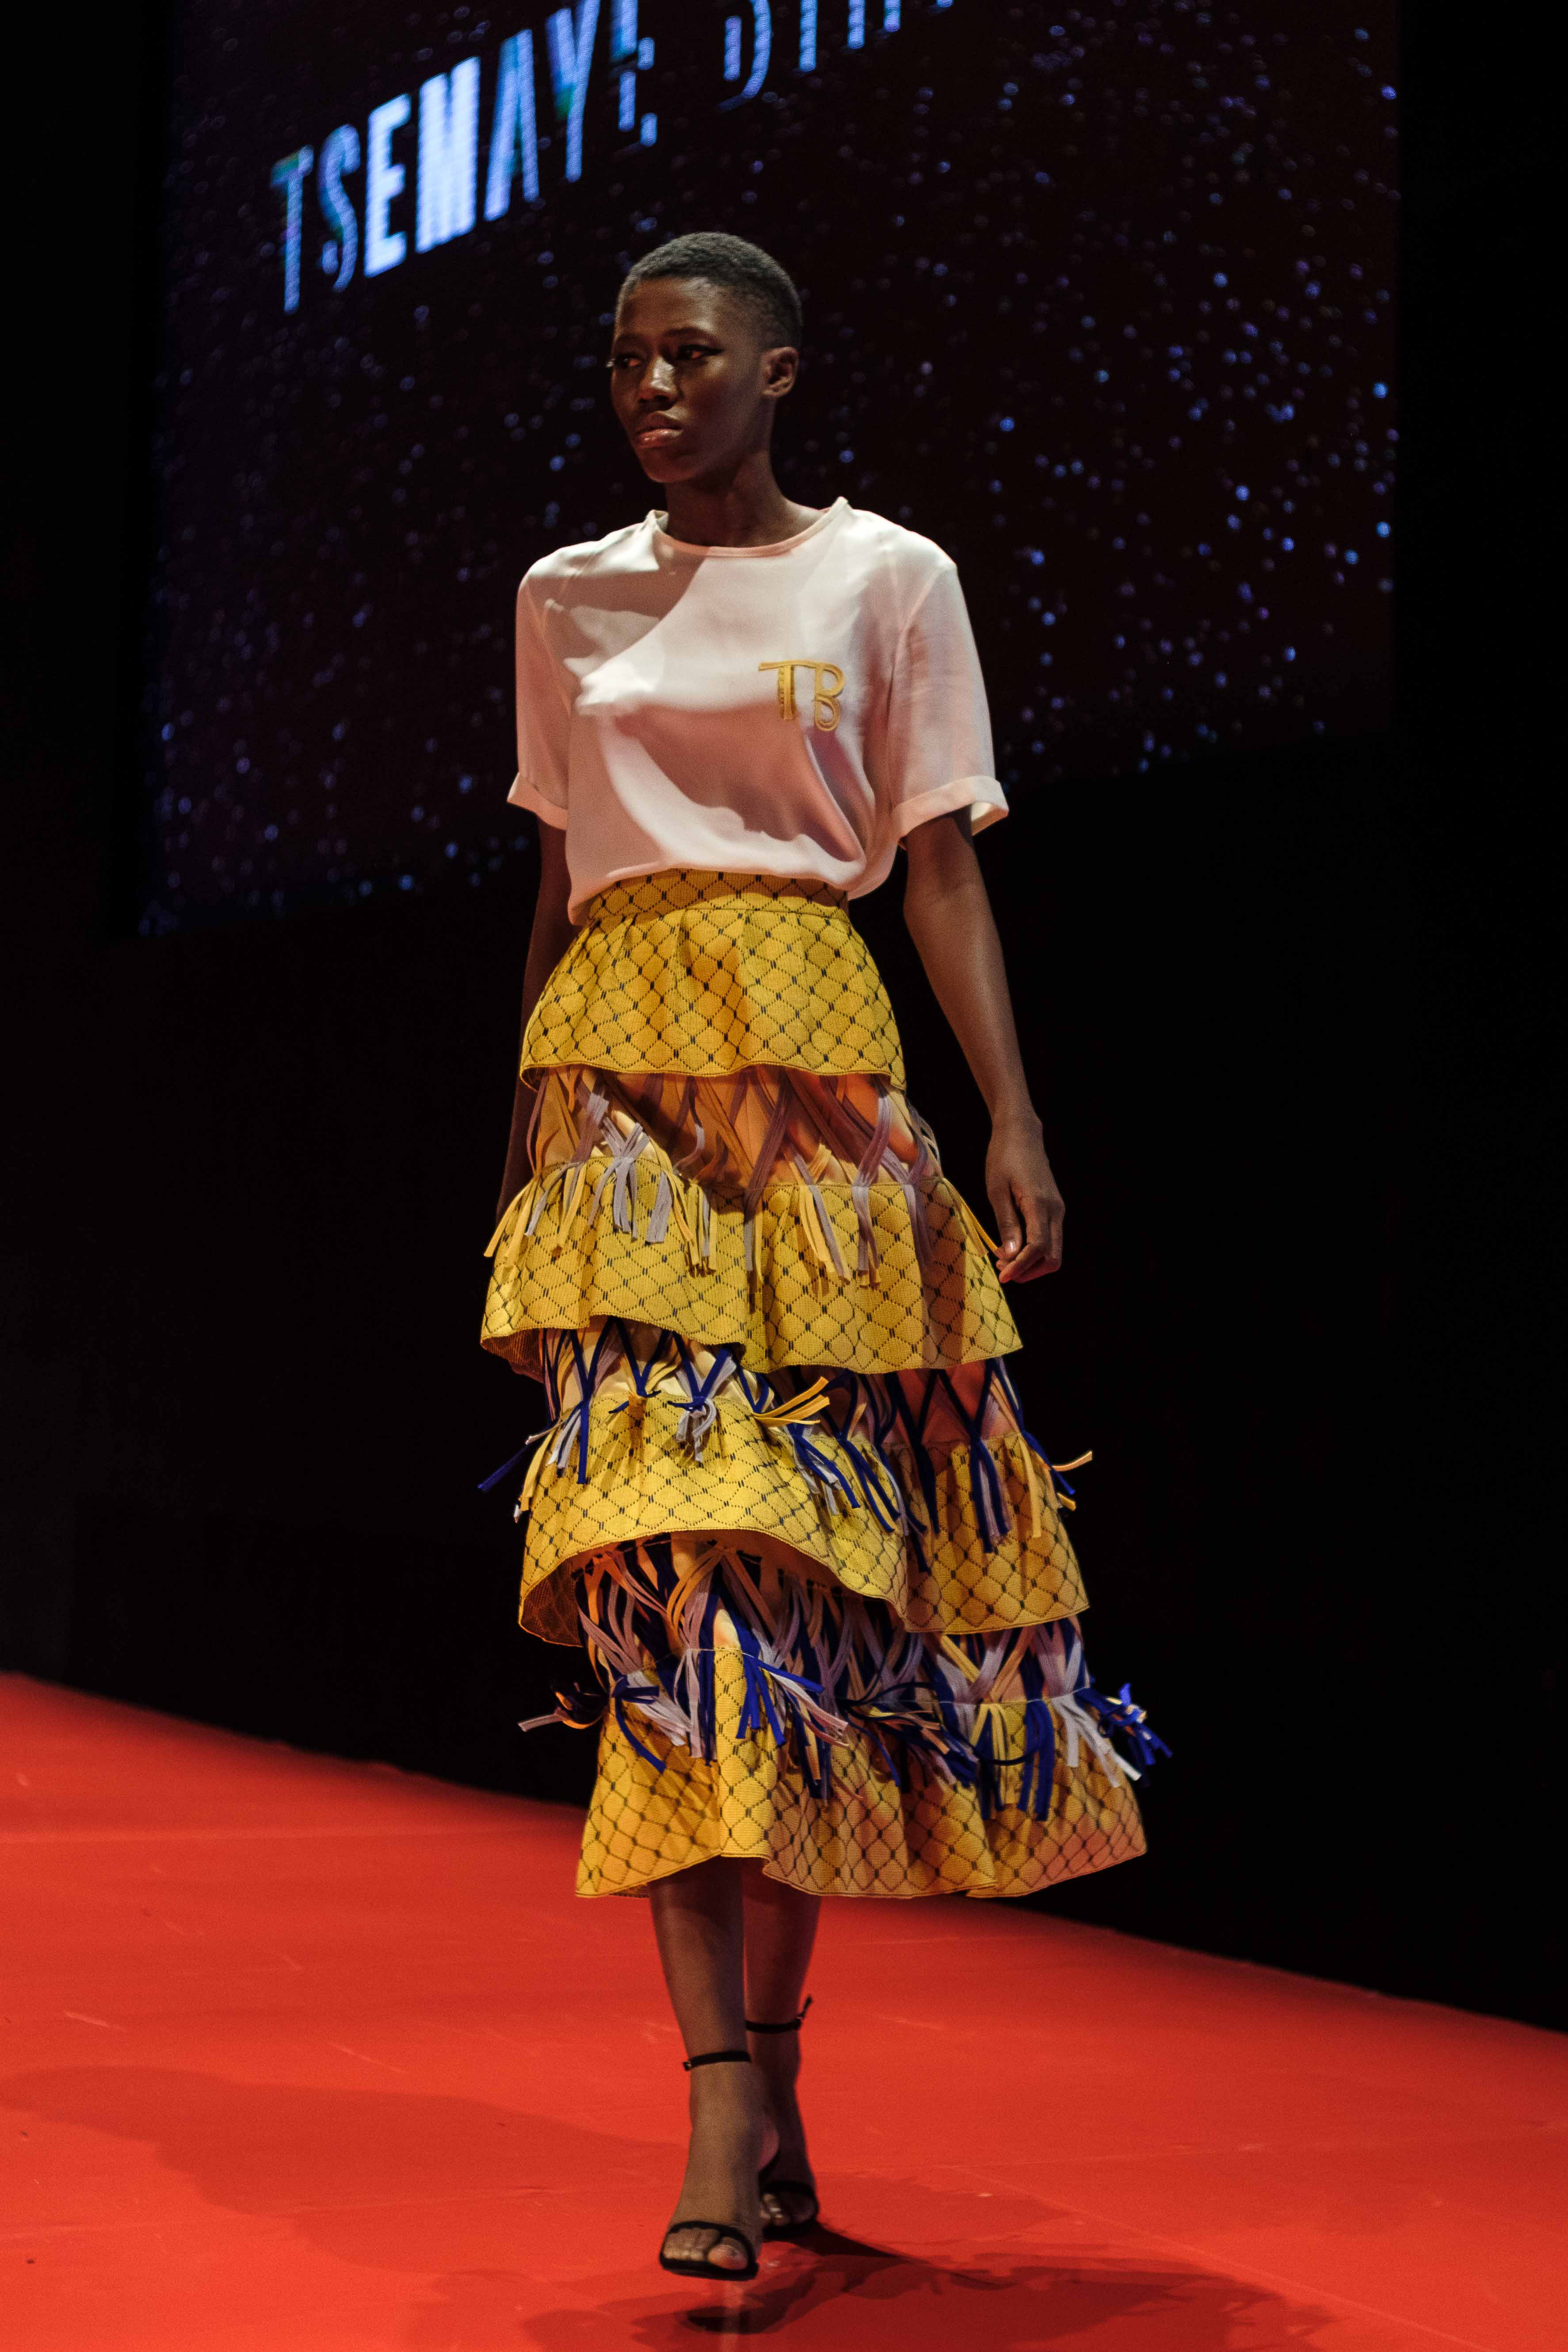 Photo: Kadara Enyeasi